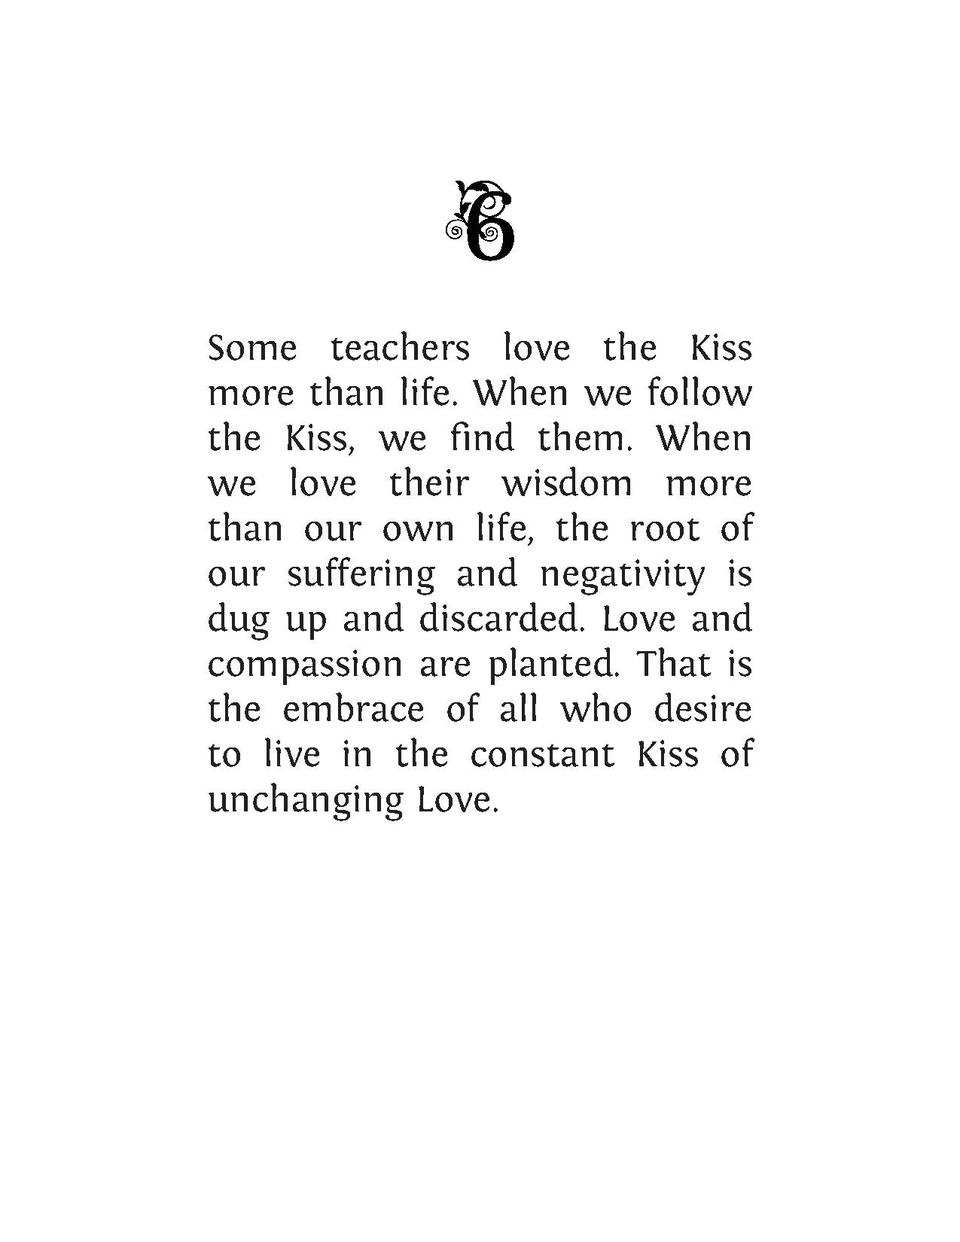 Some teachers love the Kiss more than life. When we follow the Kiss, we find them. When we love their wisdom more than our...